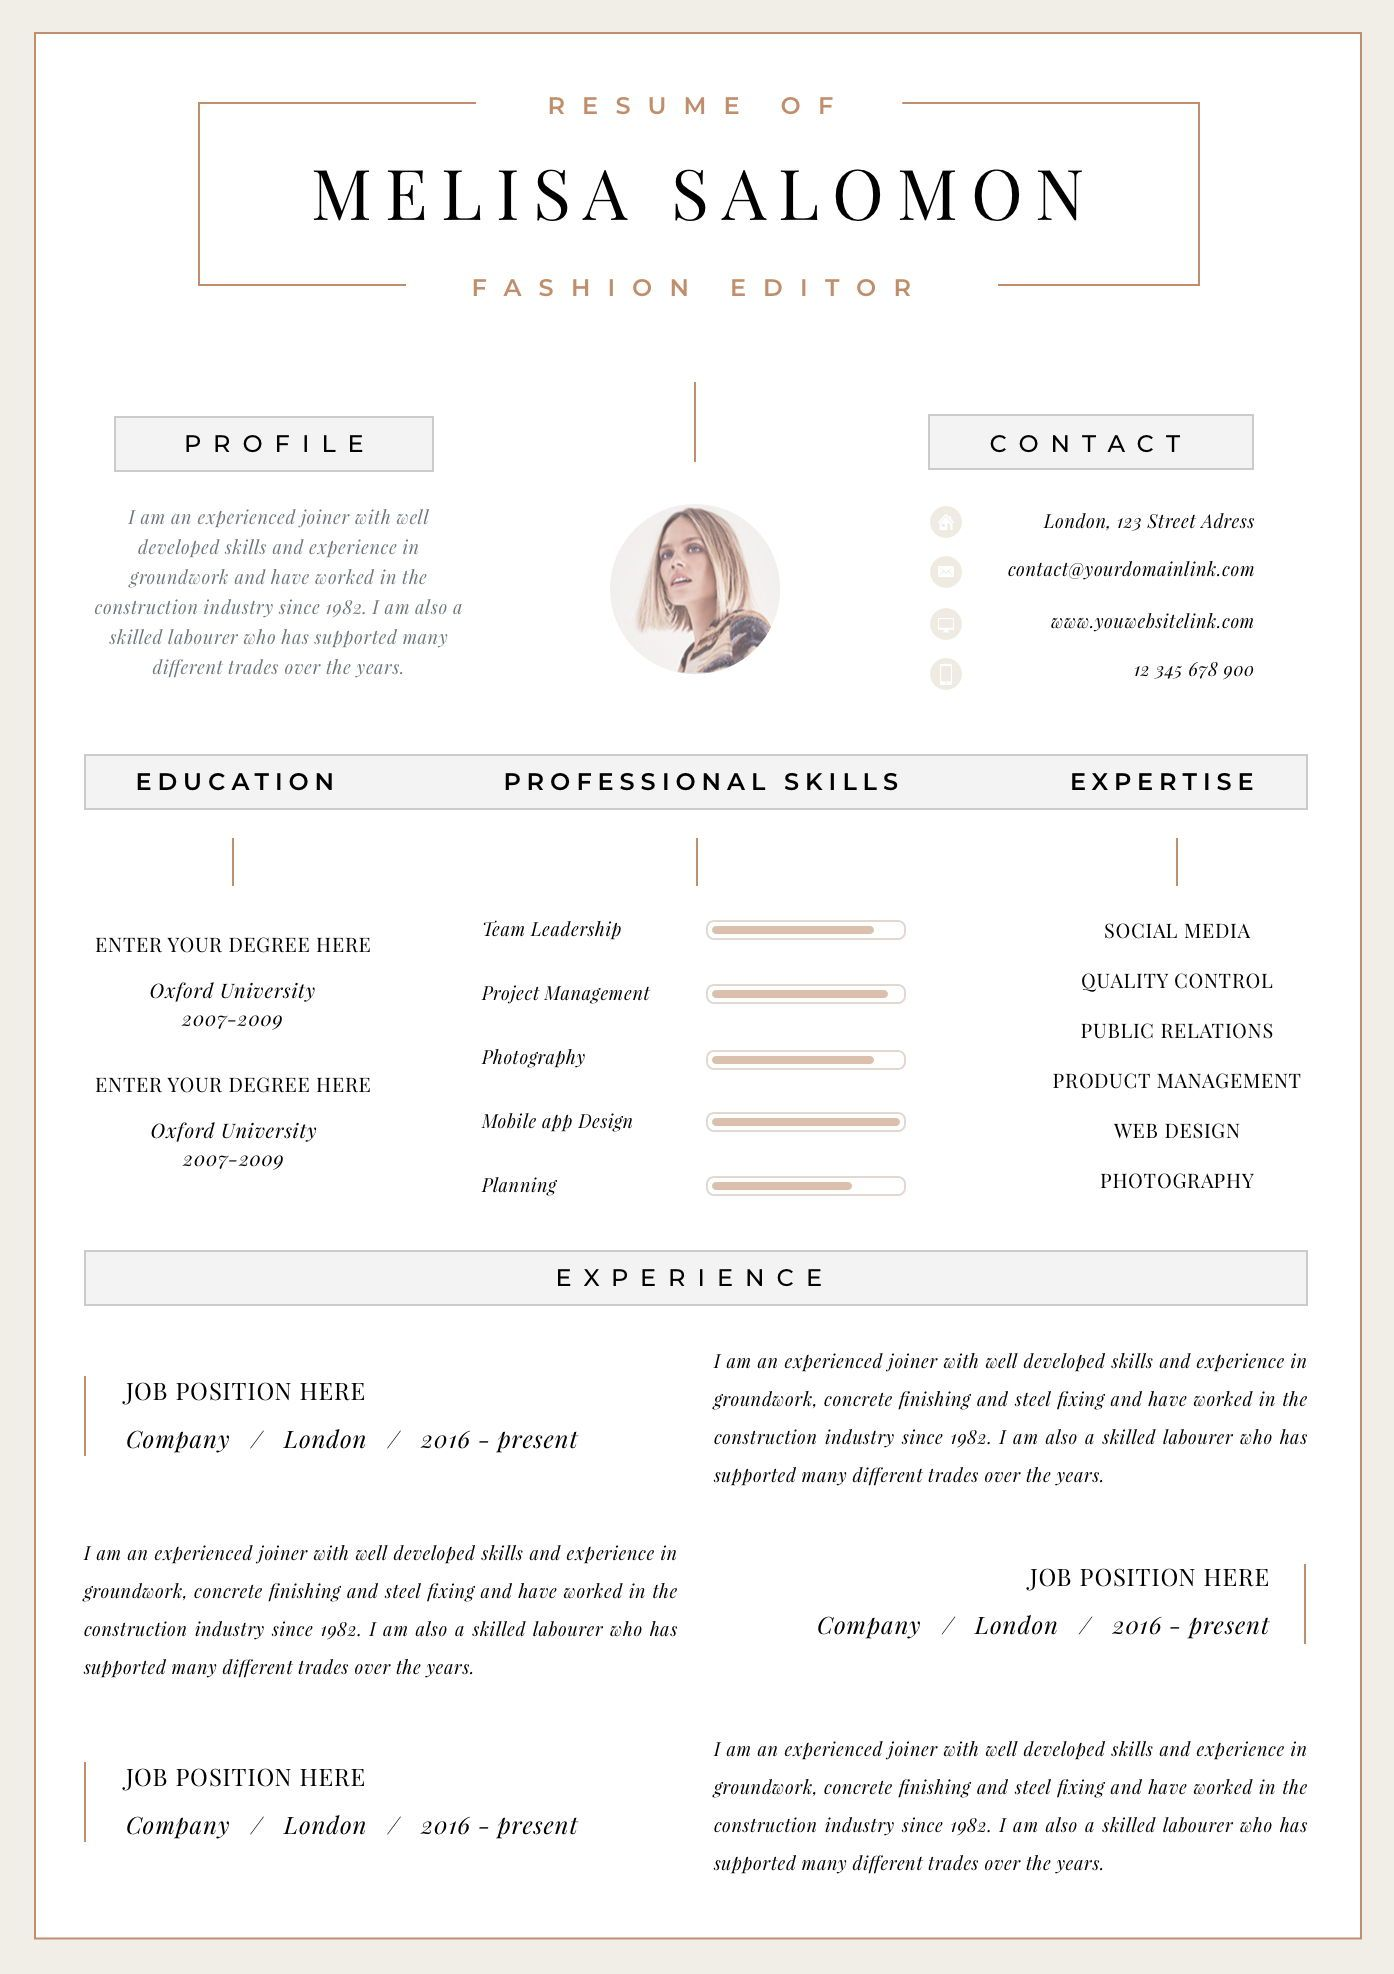 Professional Resume Template Clean Modern Resume Template One Page Resume Instant Download Resume Cv Template For Word Zurich Resume Template Professional One Page Resume Modern Resume Template